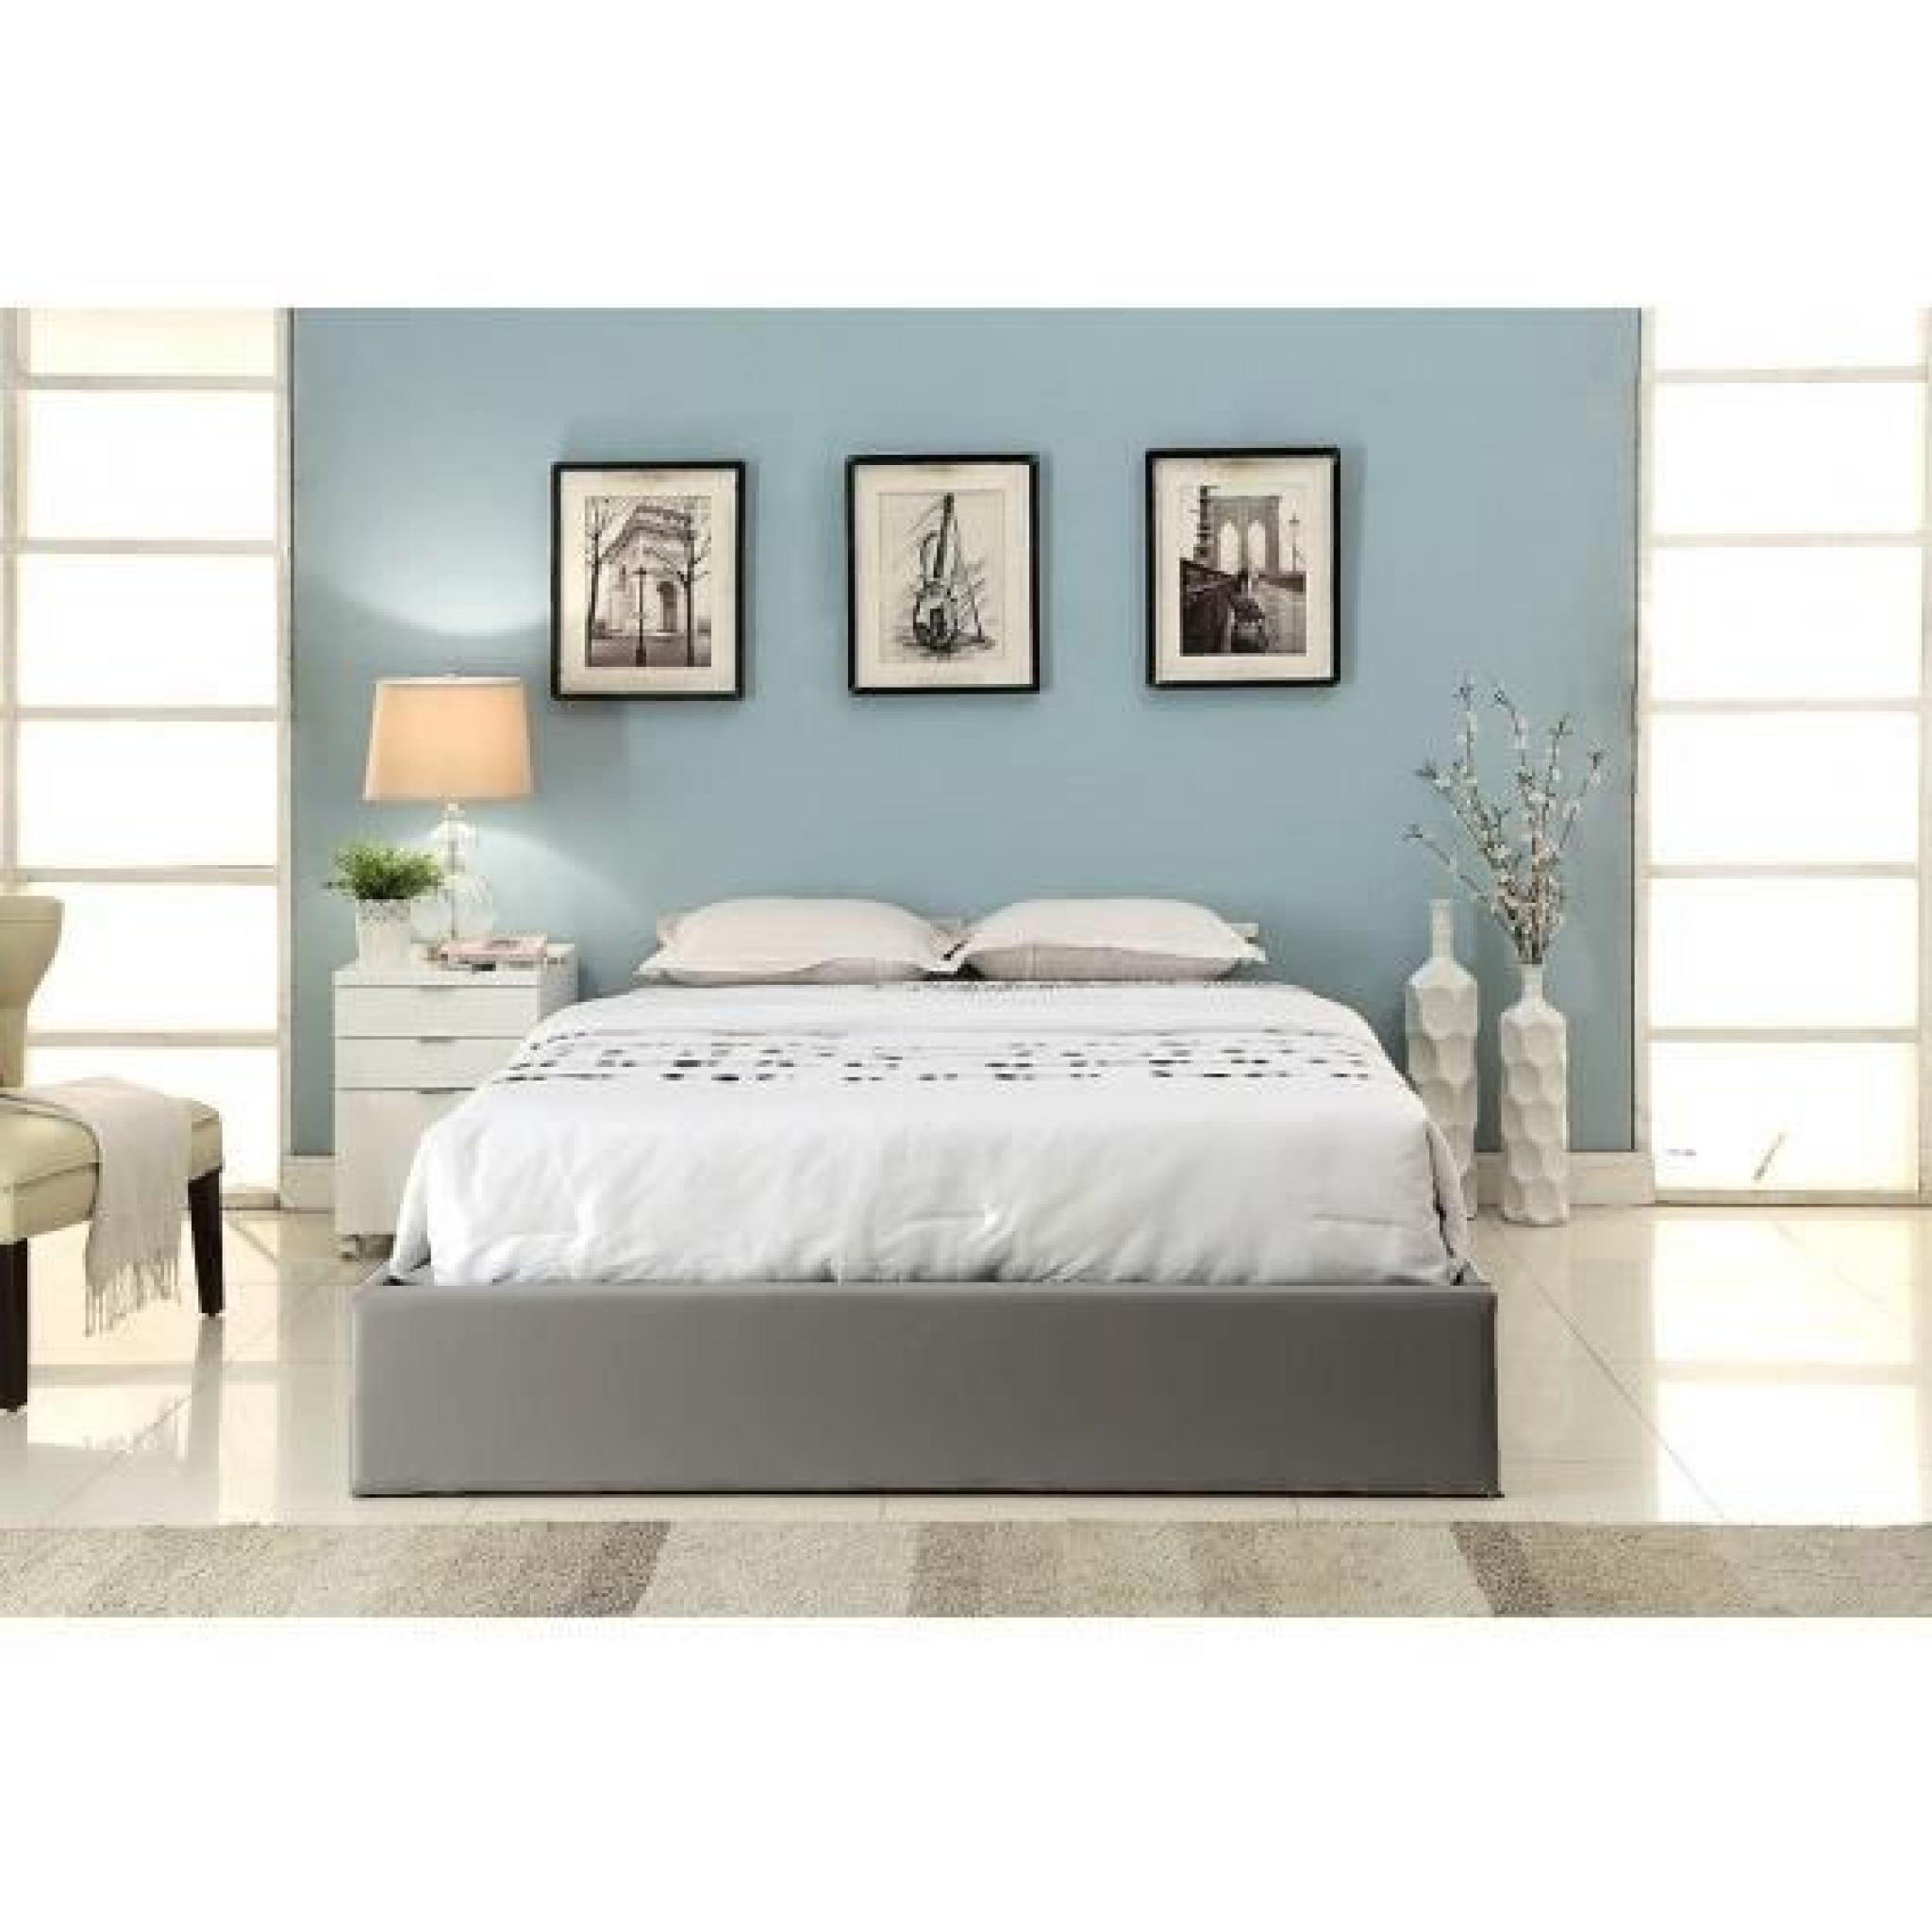 spoon lit coffre gris 160x200 cm achat vente lit pas cher couleur et. Black Bedroom Furniture Sets. Home Design Ideas